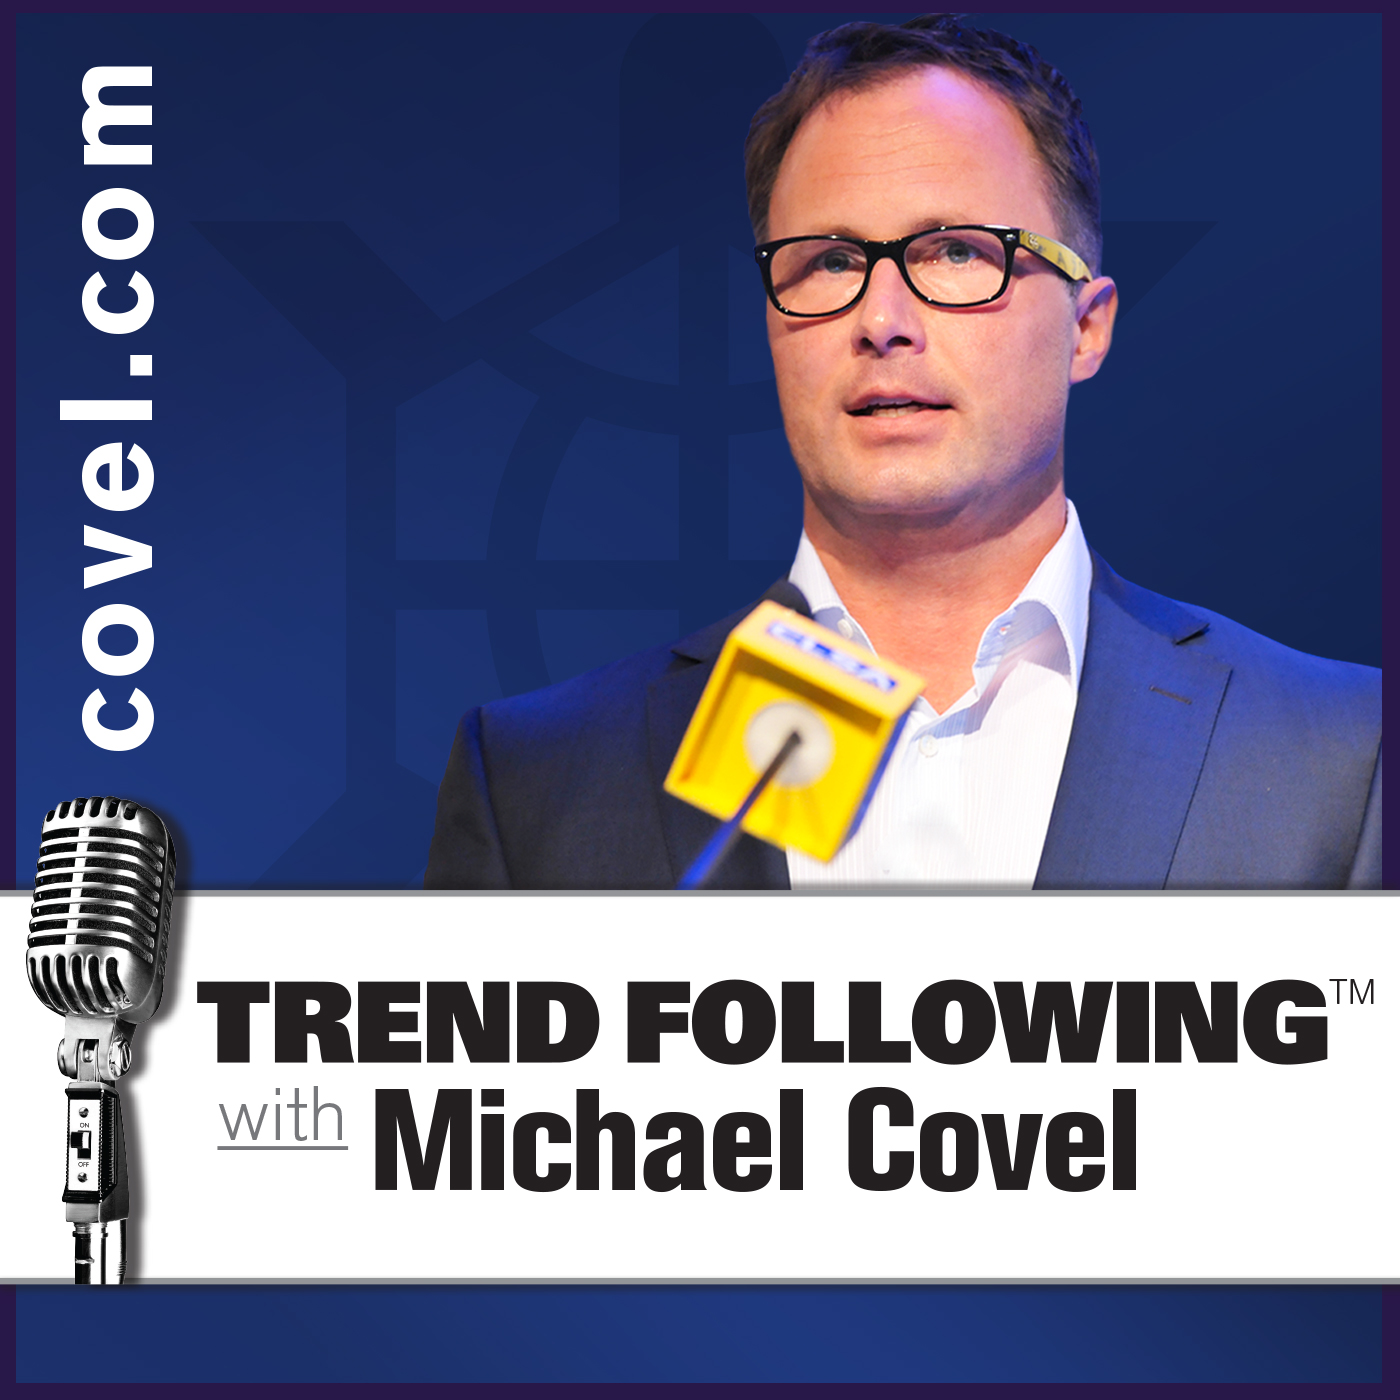 Ep. 520: Take the Lid Off with Michael Covel on Trend Following Radio